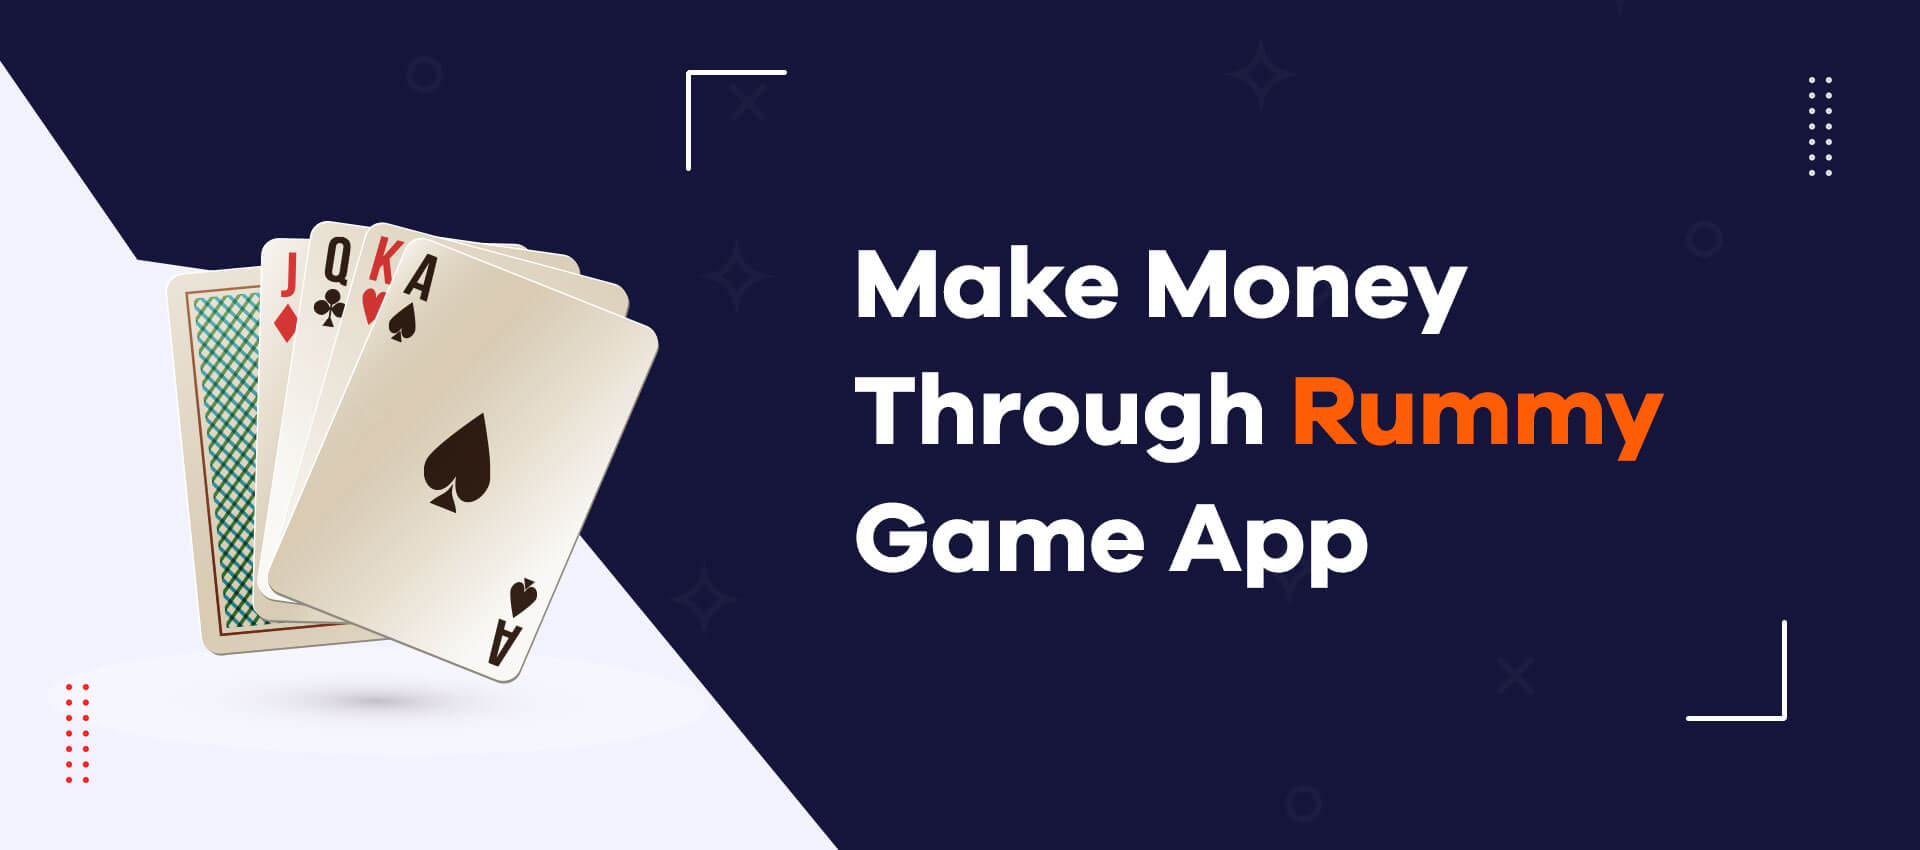 Discover the Secret of Earning Money Through Rummy Game App